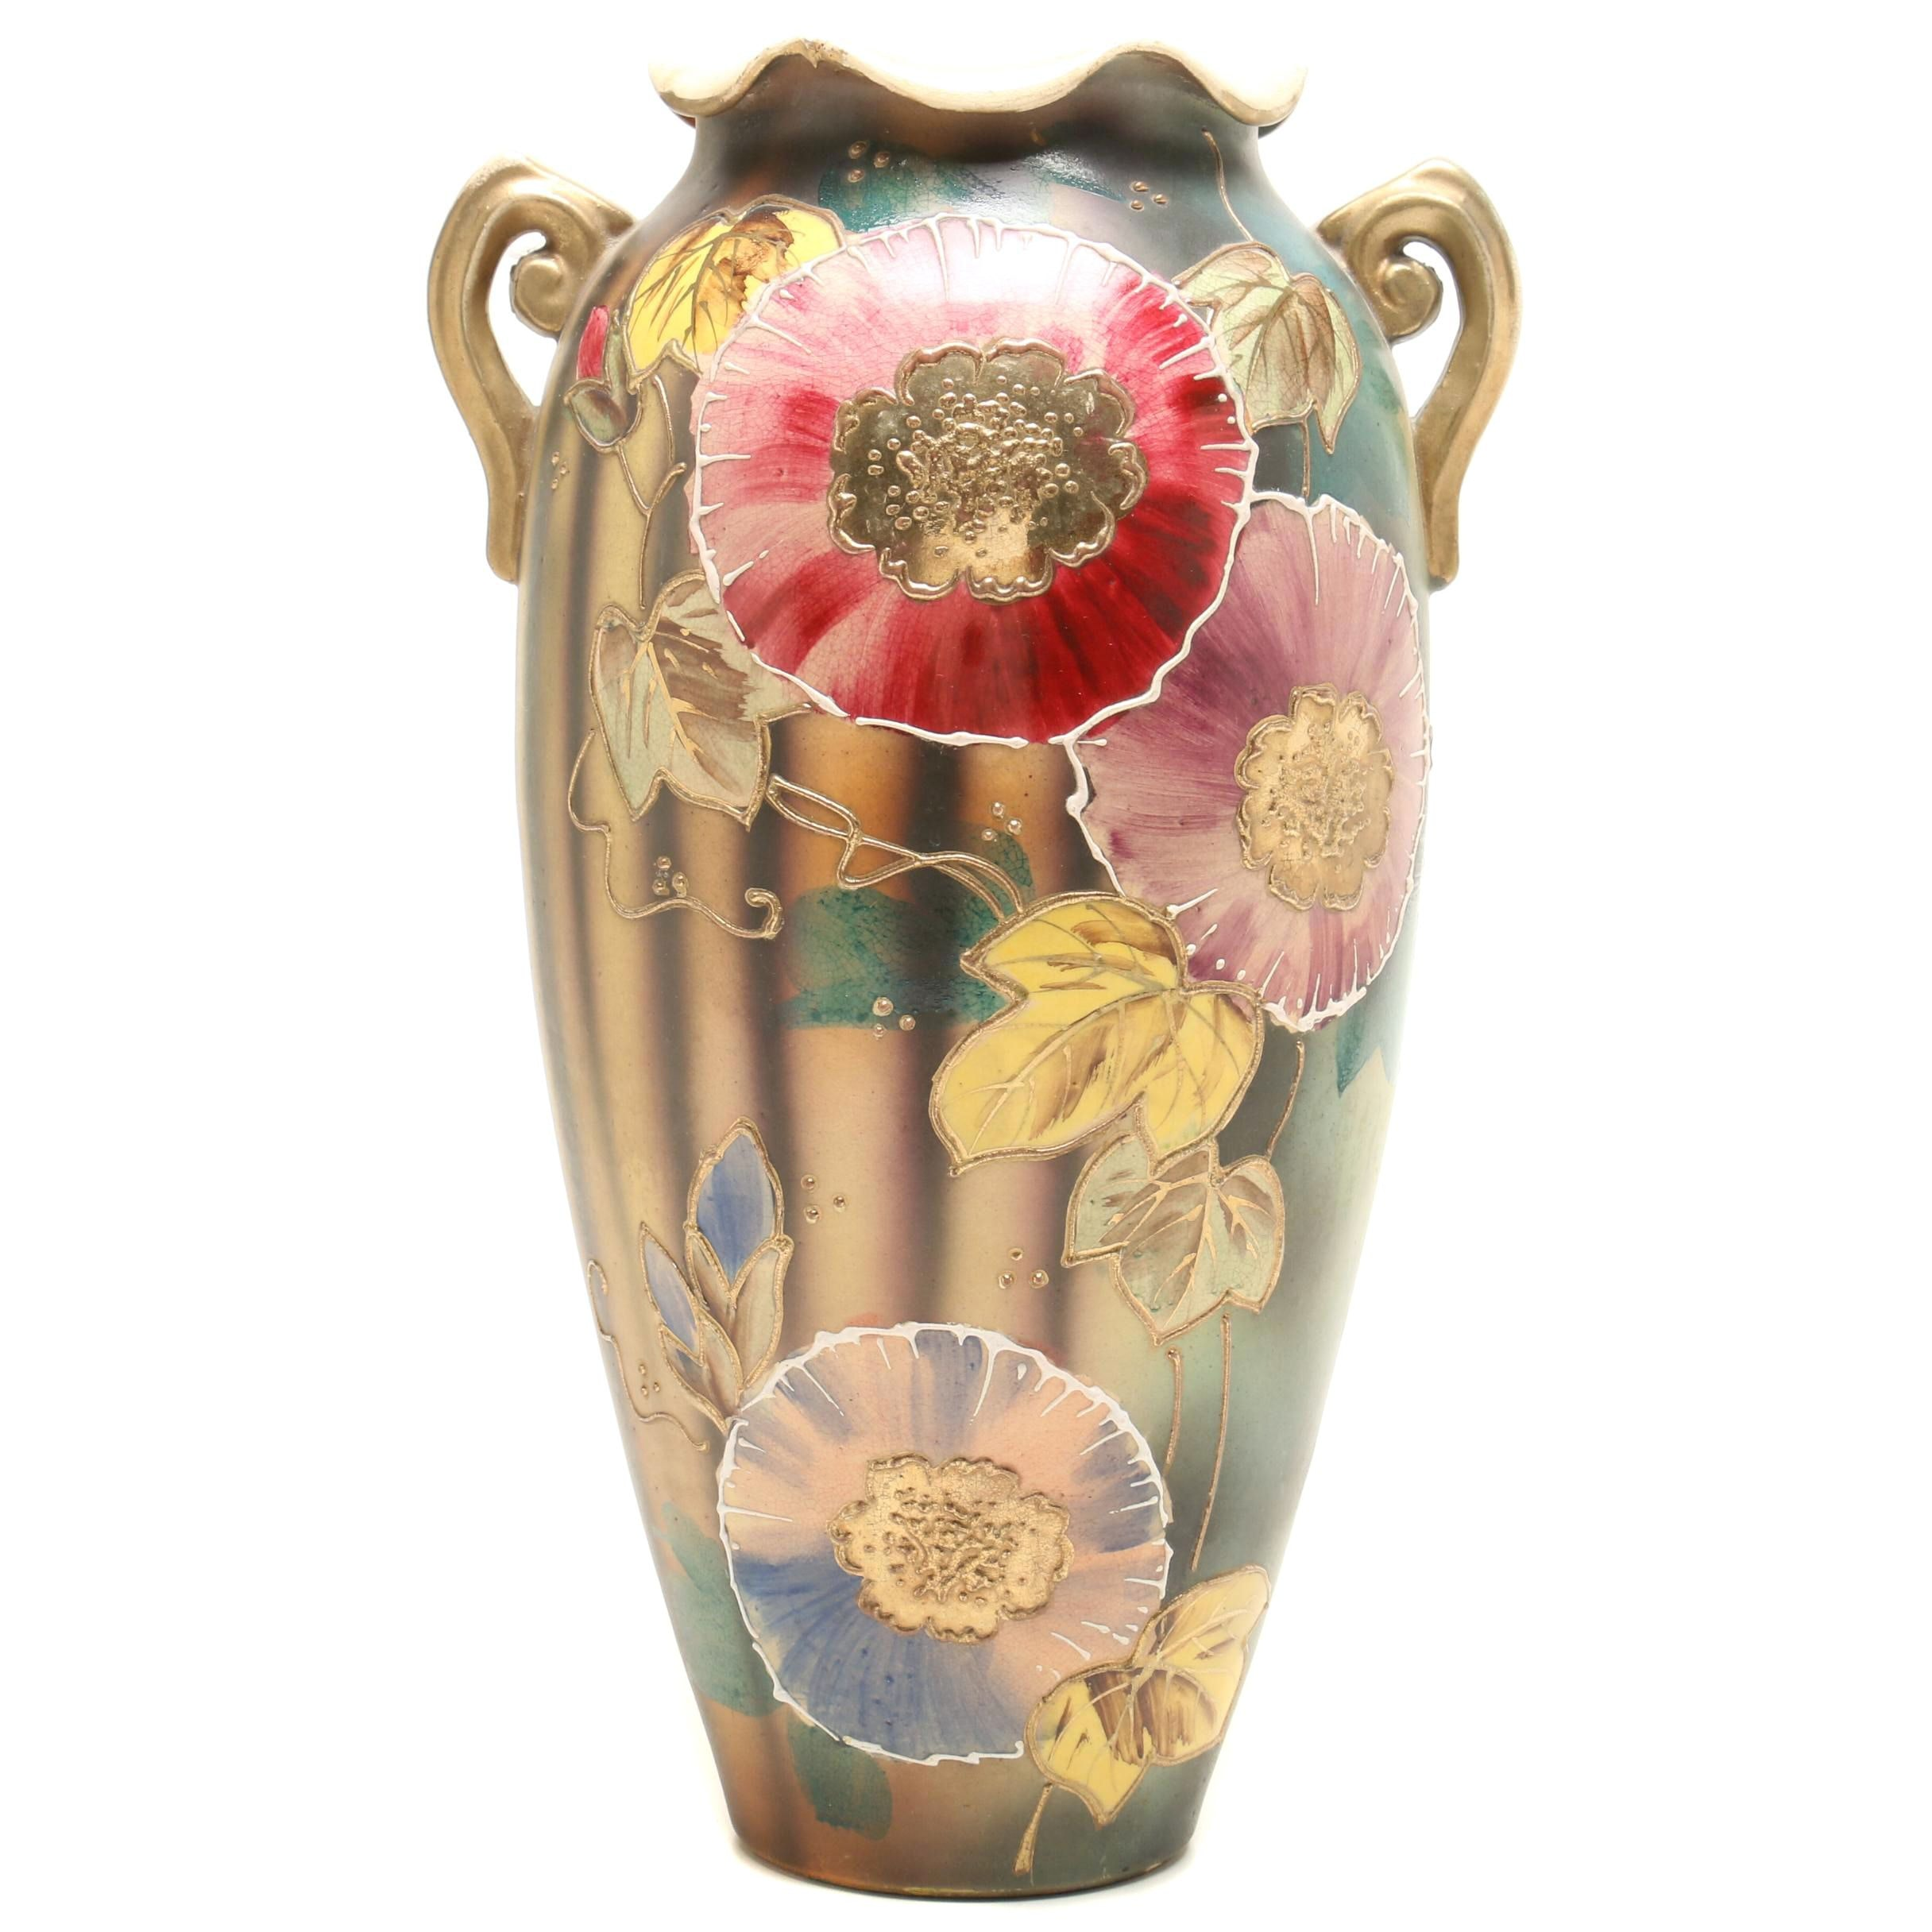 Vintage Hand Painted Floral Vase with Gold Gild Accents